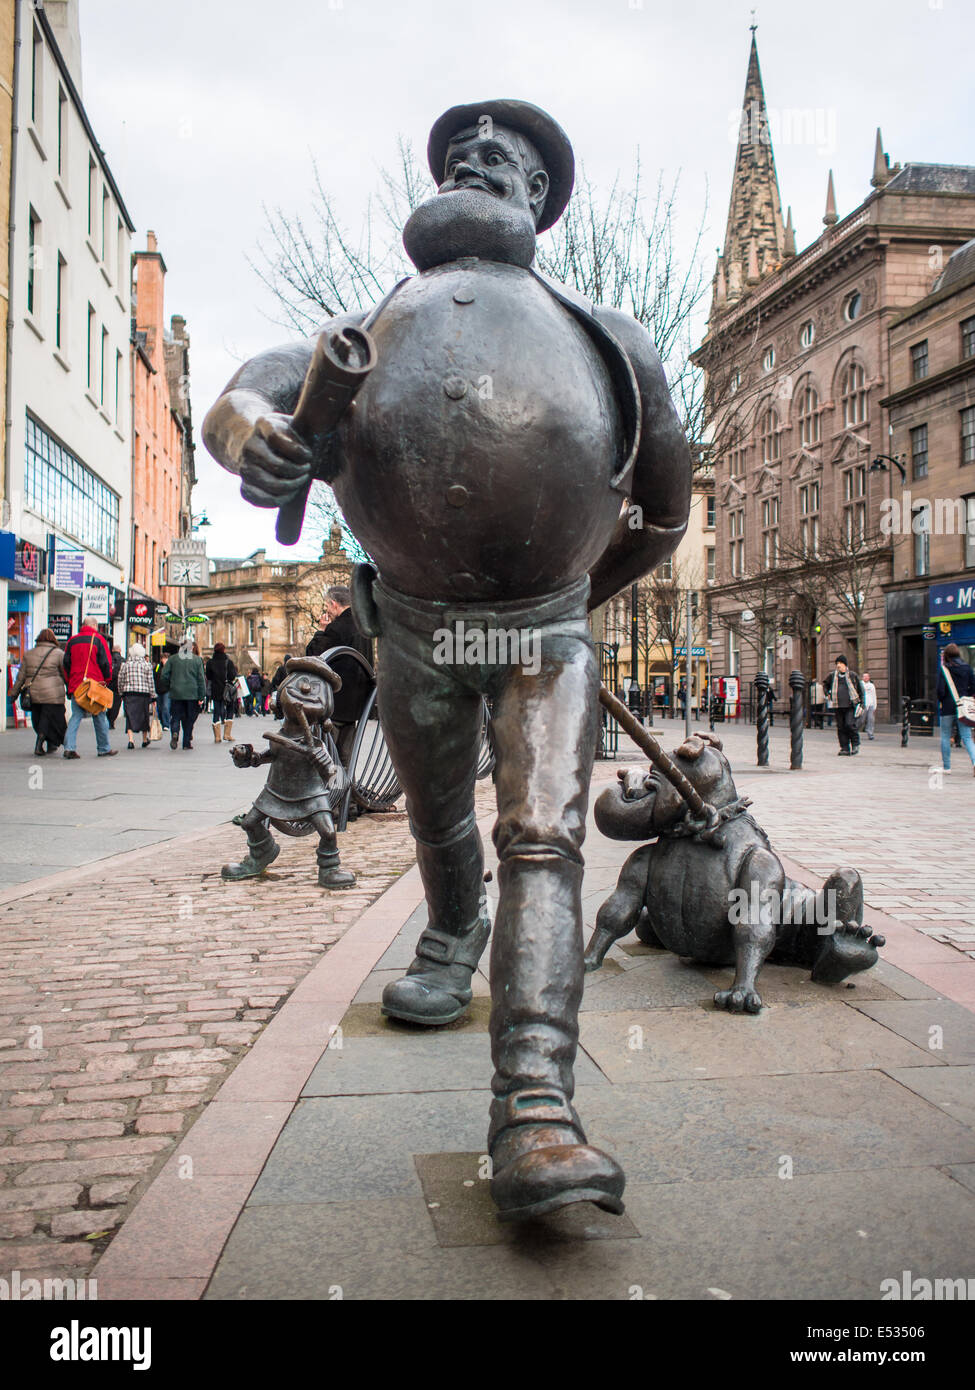 Desperate Dan statue in Dundee's City Square - Stock Image